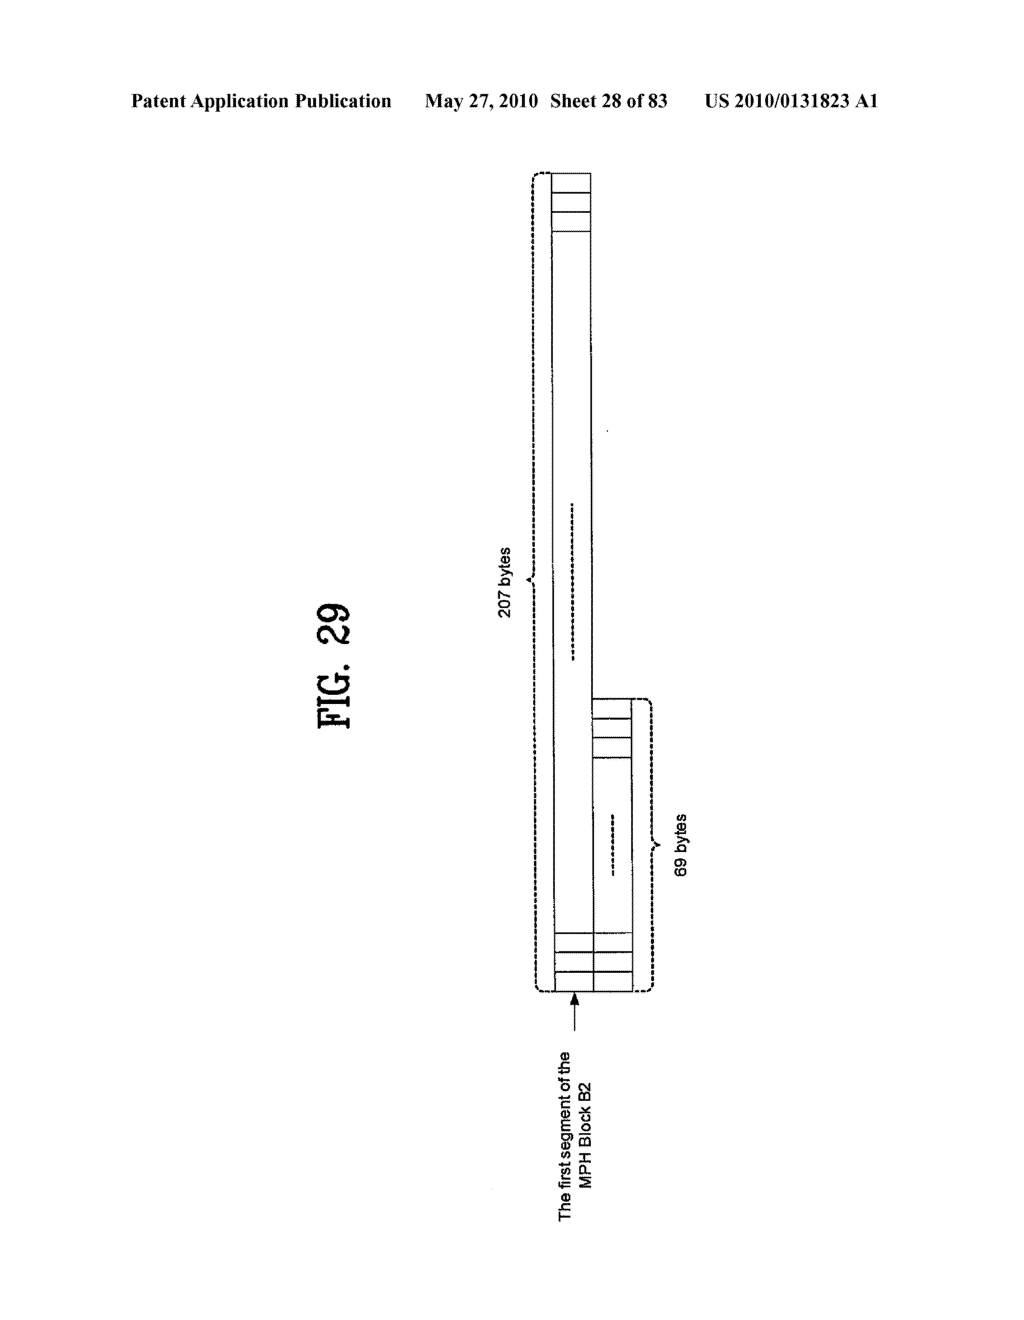 DIGITAL BROADCAST SYSTEM FOR TRANSMITTING/RECEIVING DIGITAL BROADCAST DATA, AND DATA PROCESSING METHOD FOR USE IN THE SAME - diagram, schematic, and image 29